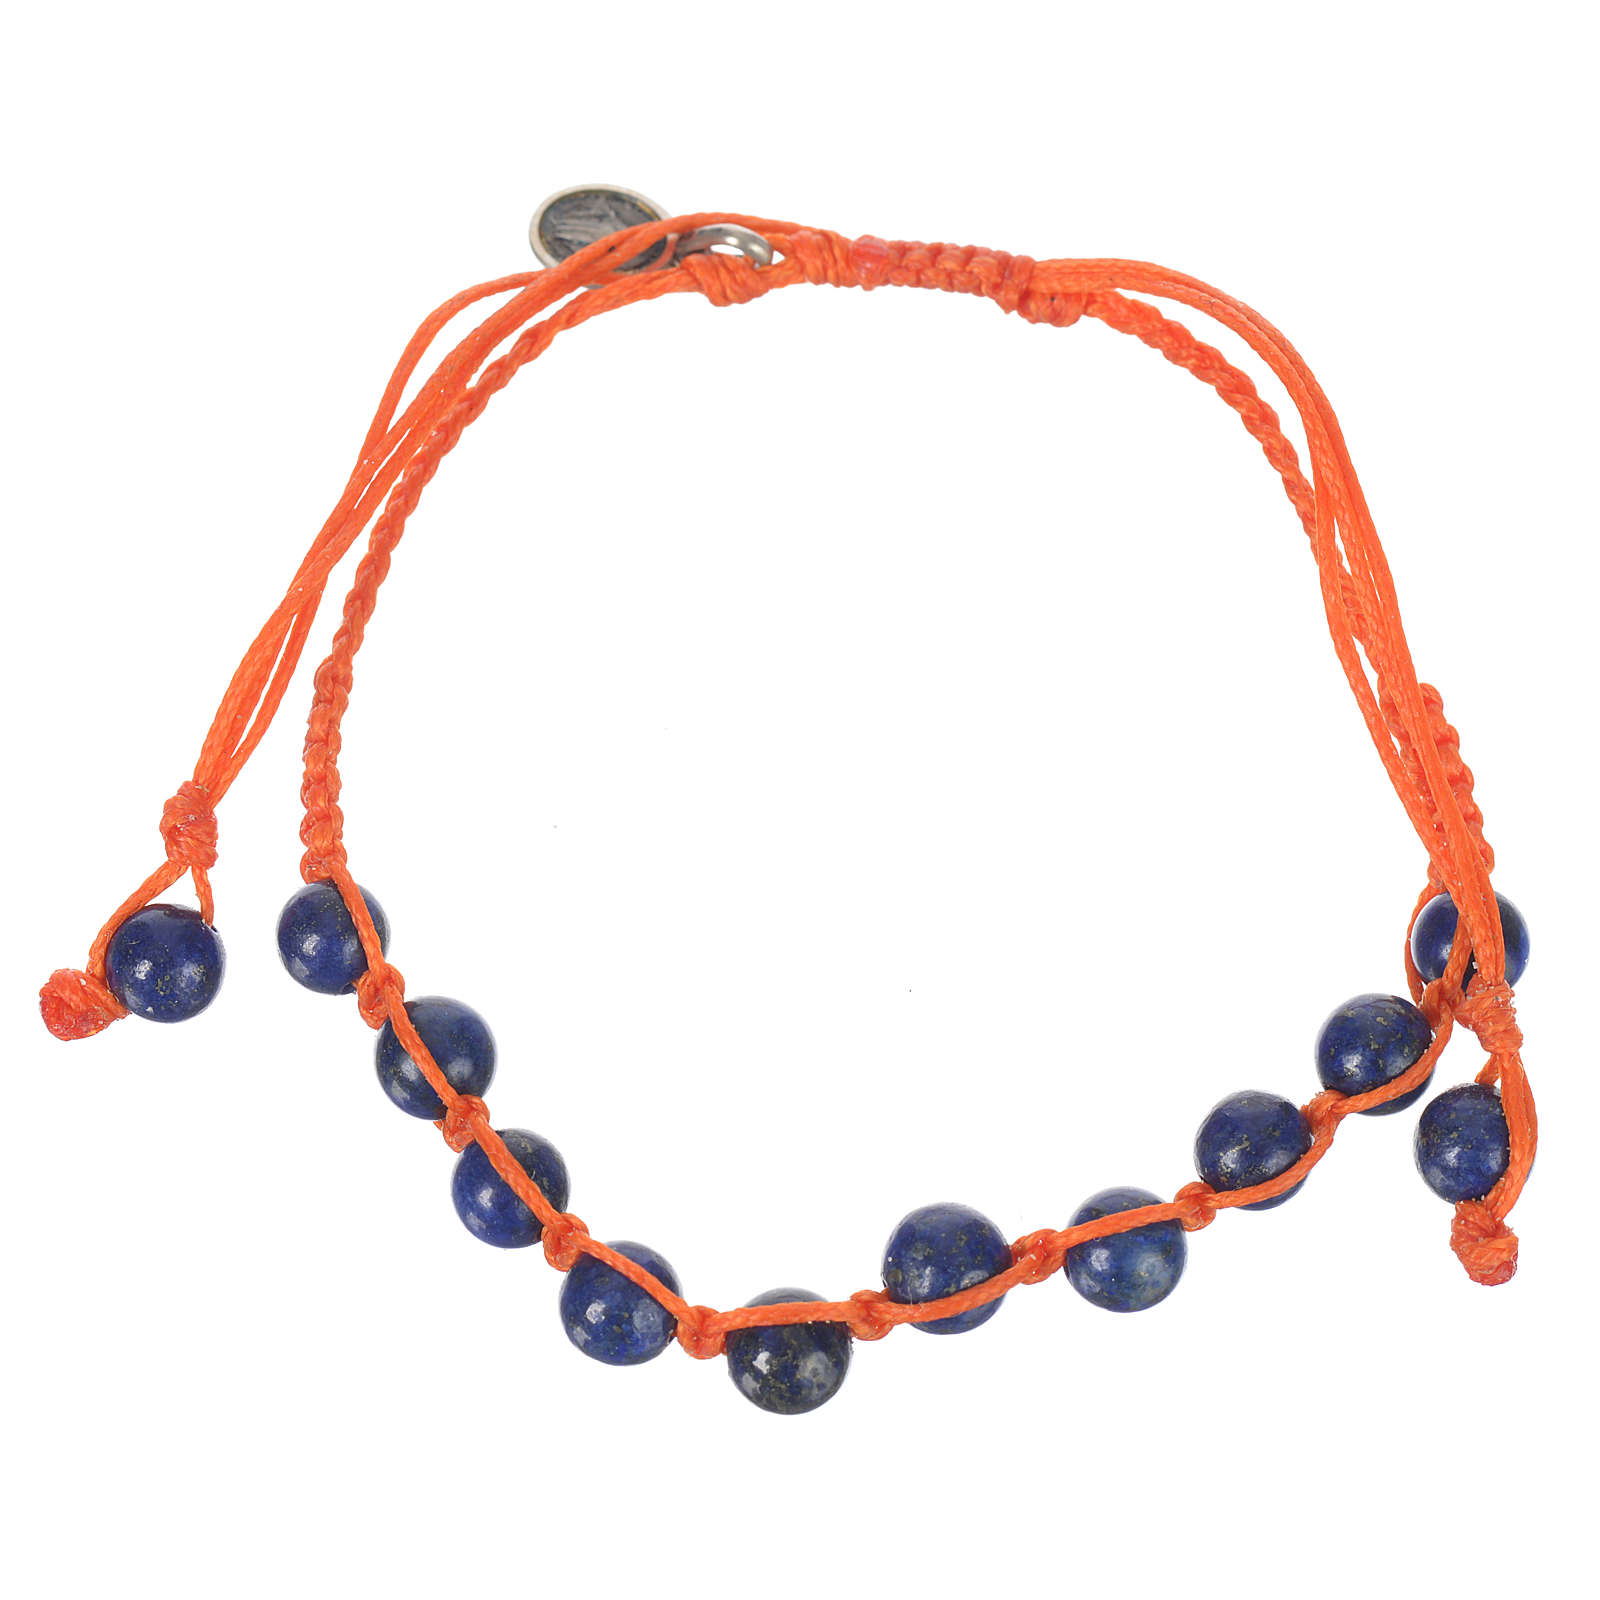 Bracelet in Lapis lazuli with Medal in silver and orange cord 4